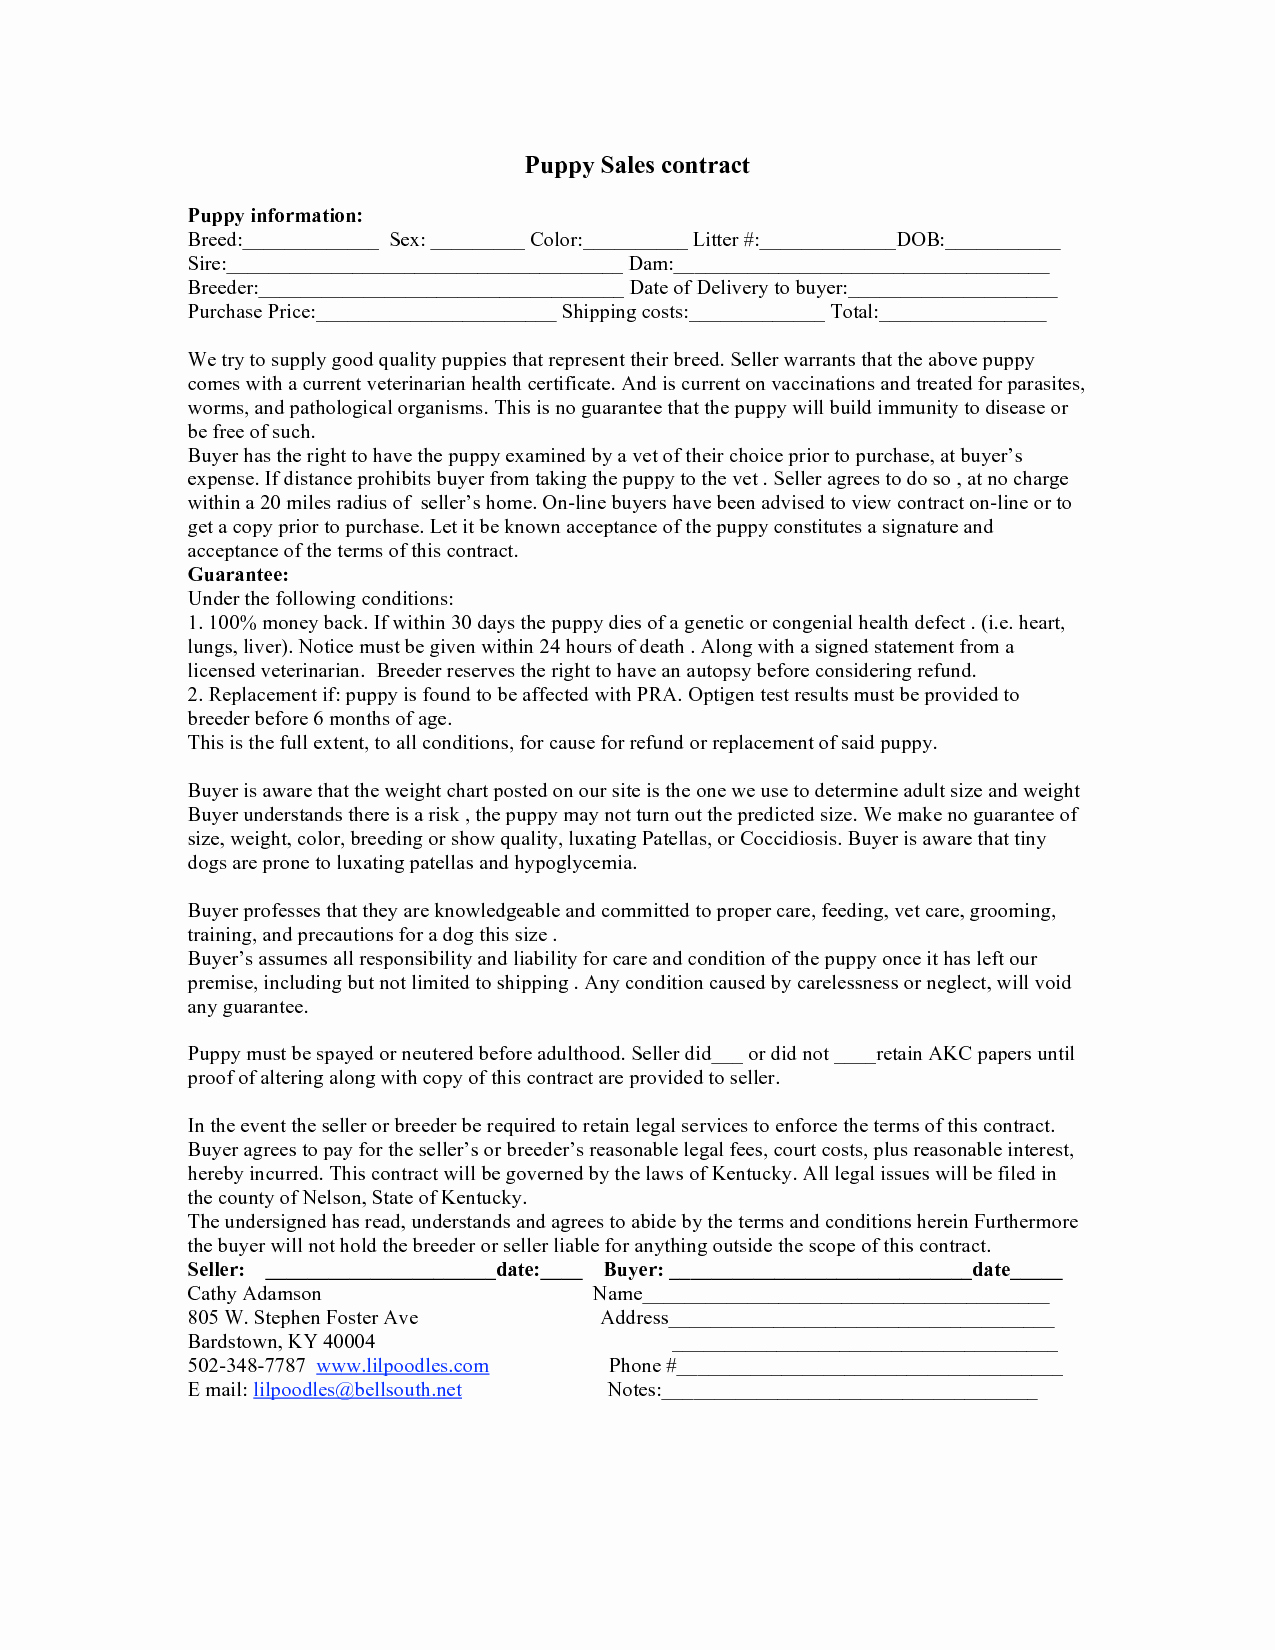 Puppy Sale Contract Template New Puppy Sales Agreement the Modern Rules Puppy Sales